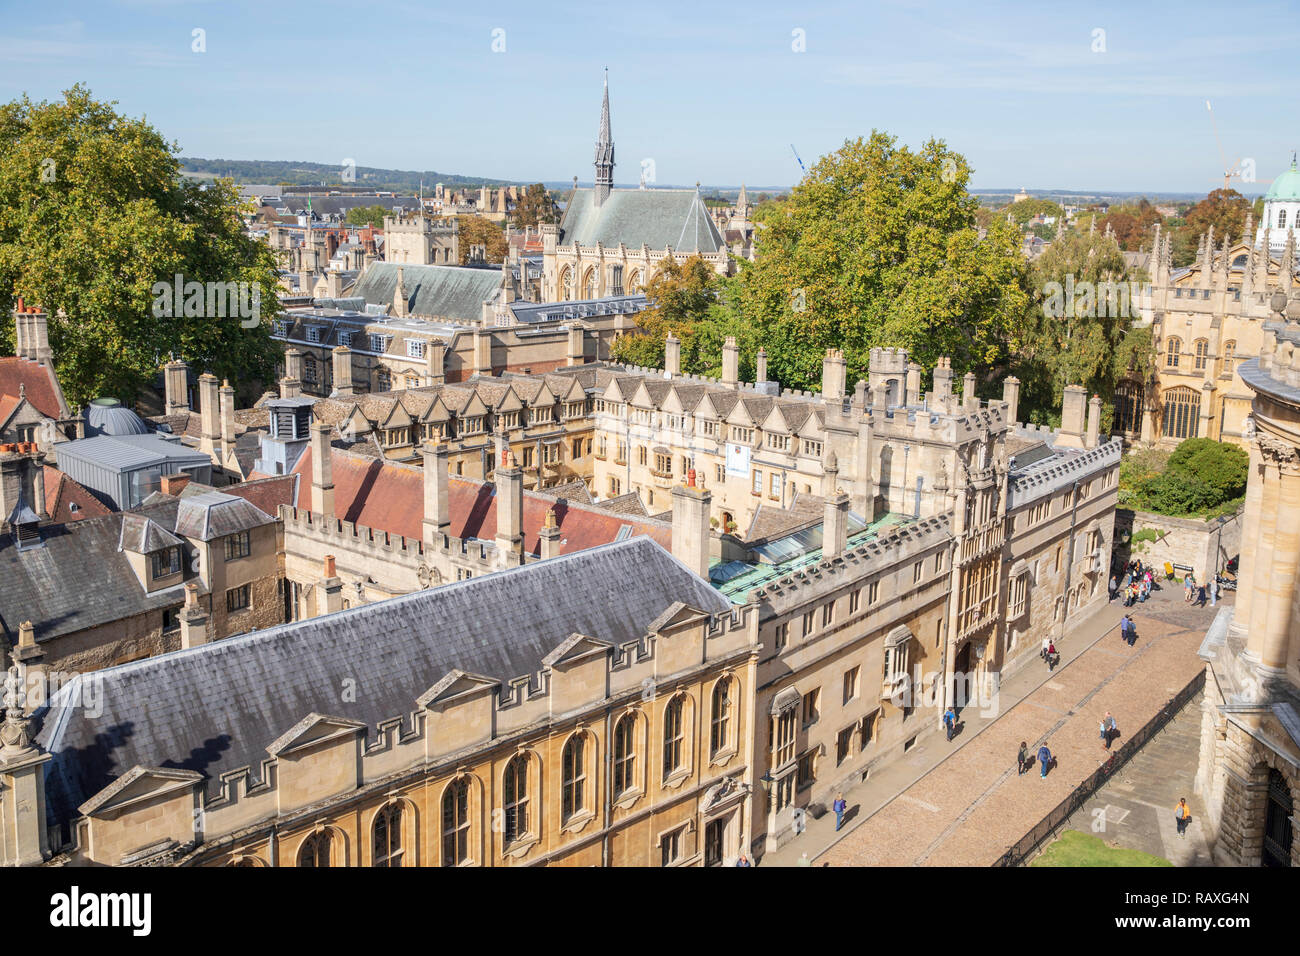 Brasenose College, Oxford, England, with Exeter College in the background. - Stock Image